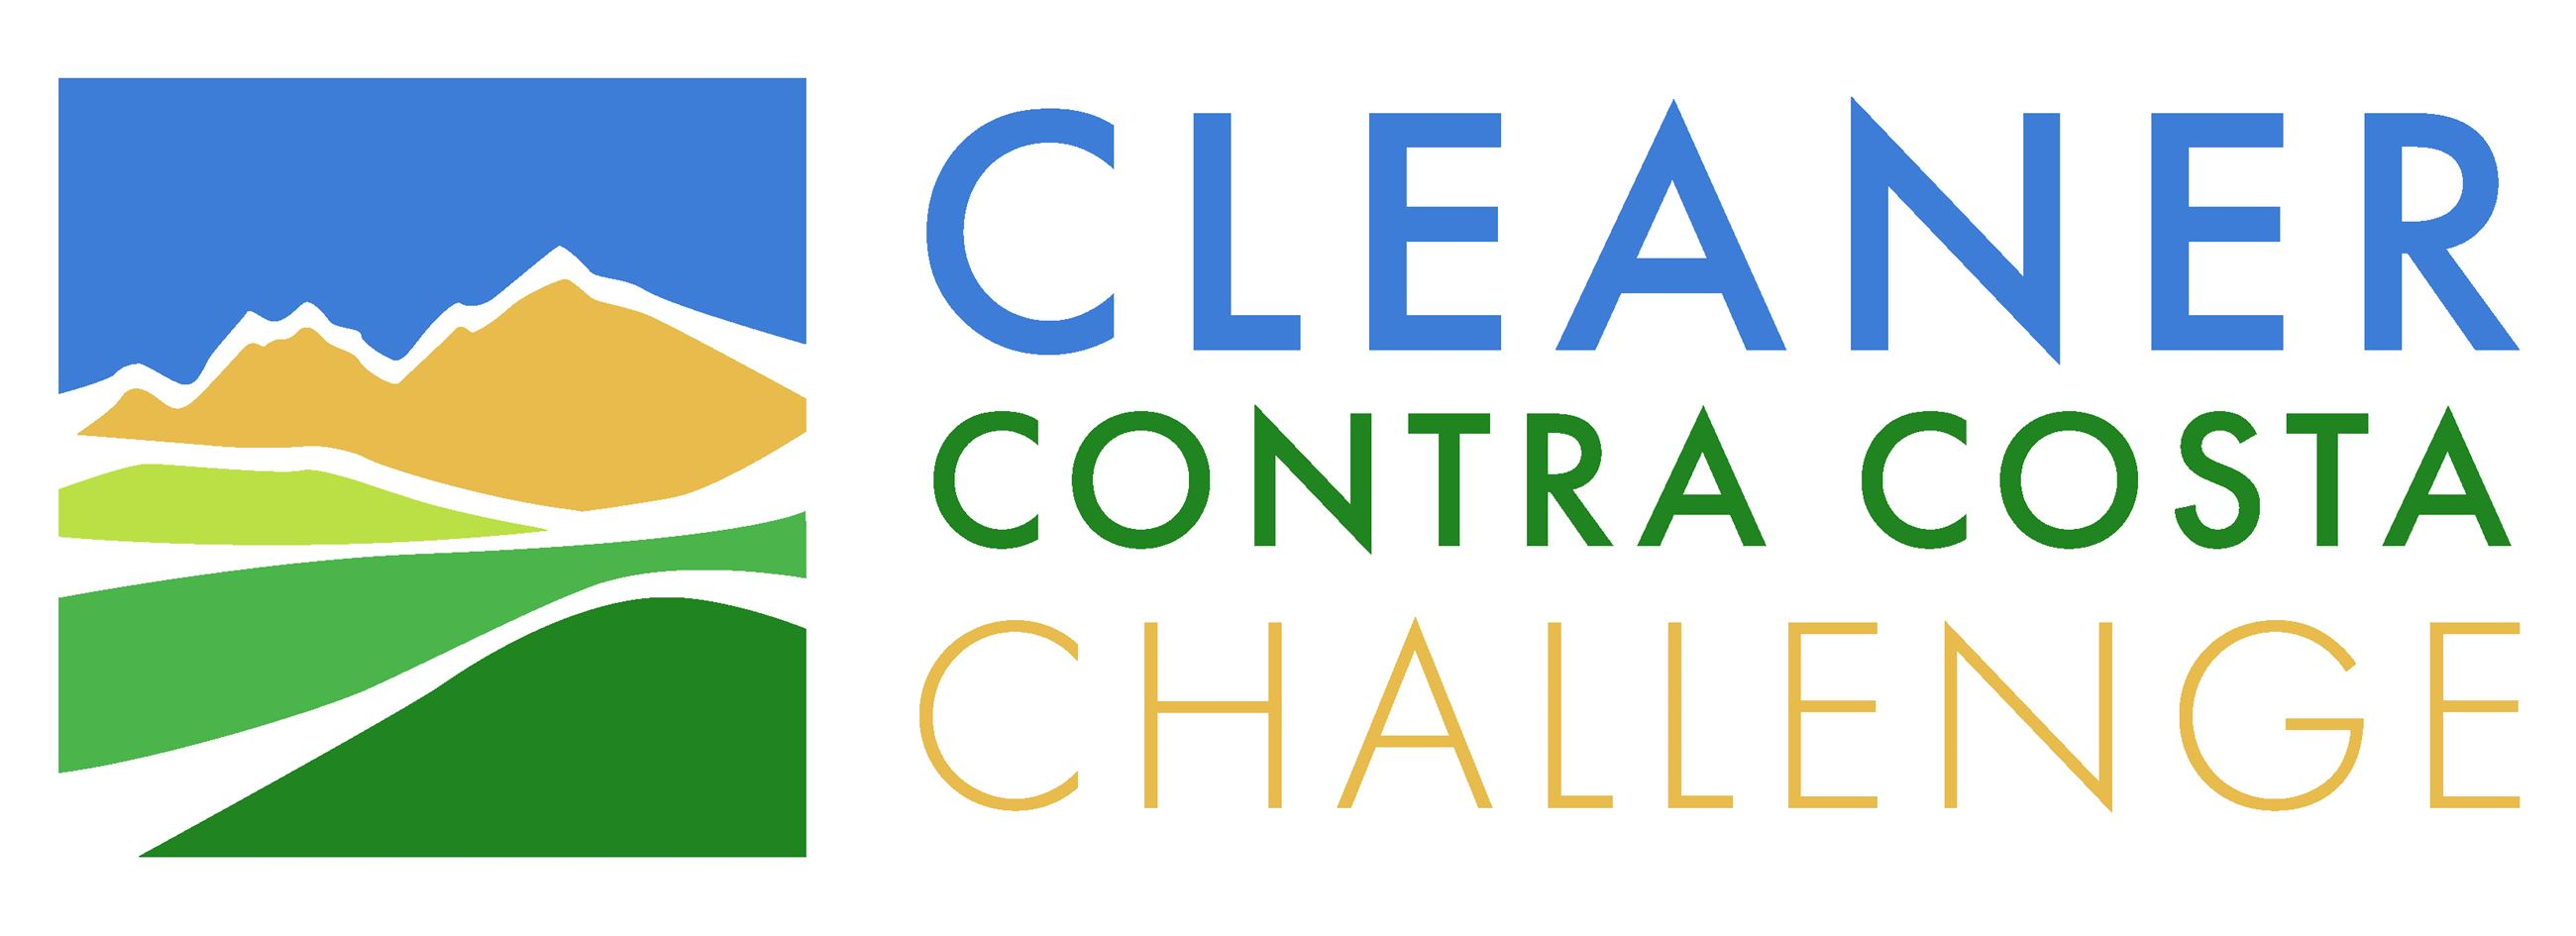 Cleaner Contra Costa Challenge logo